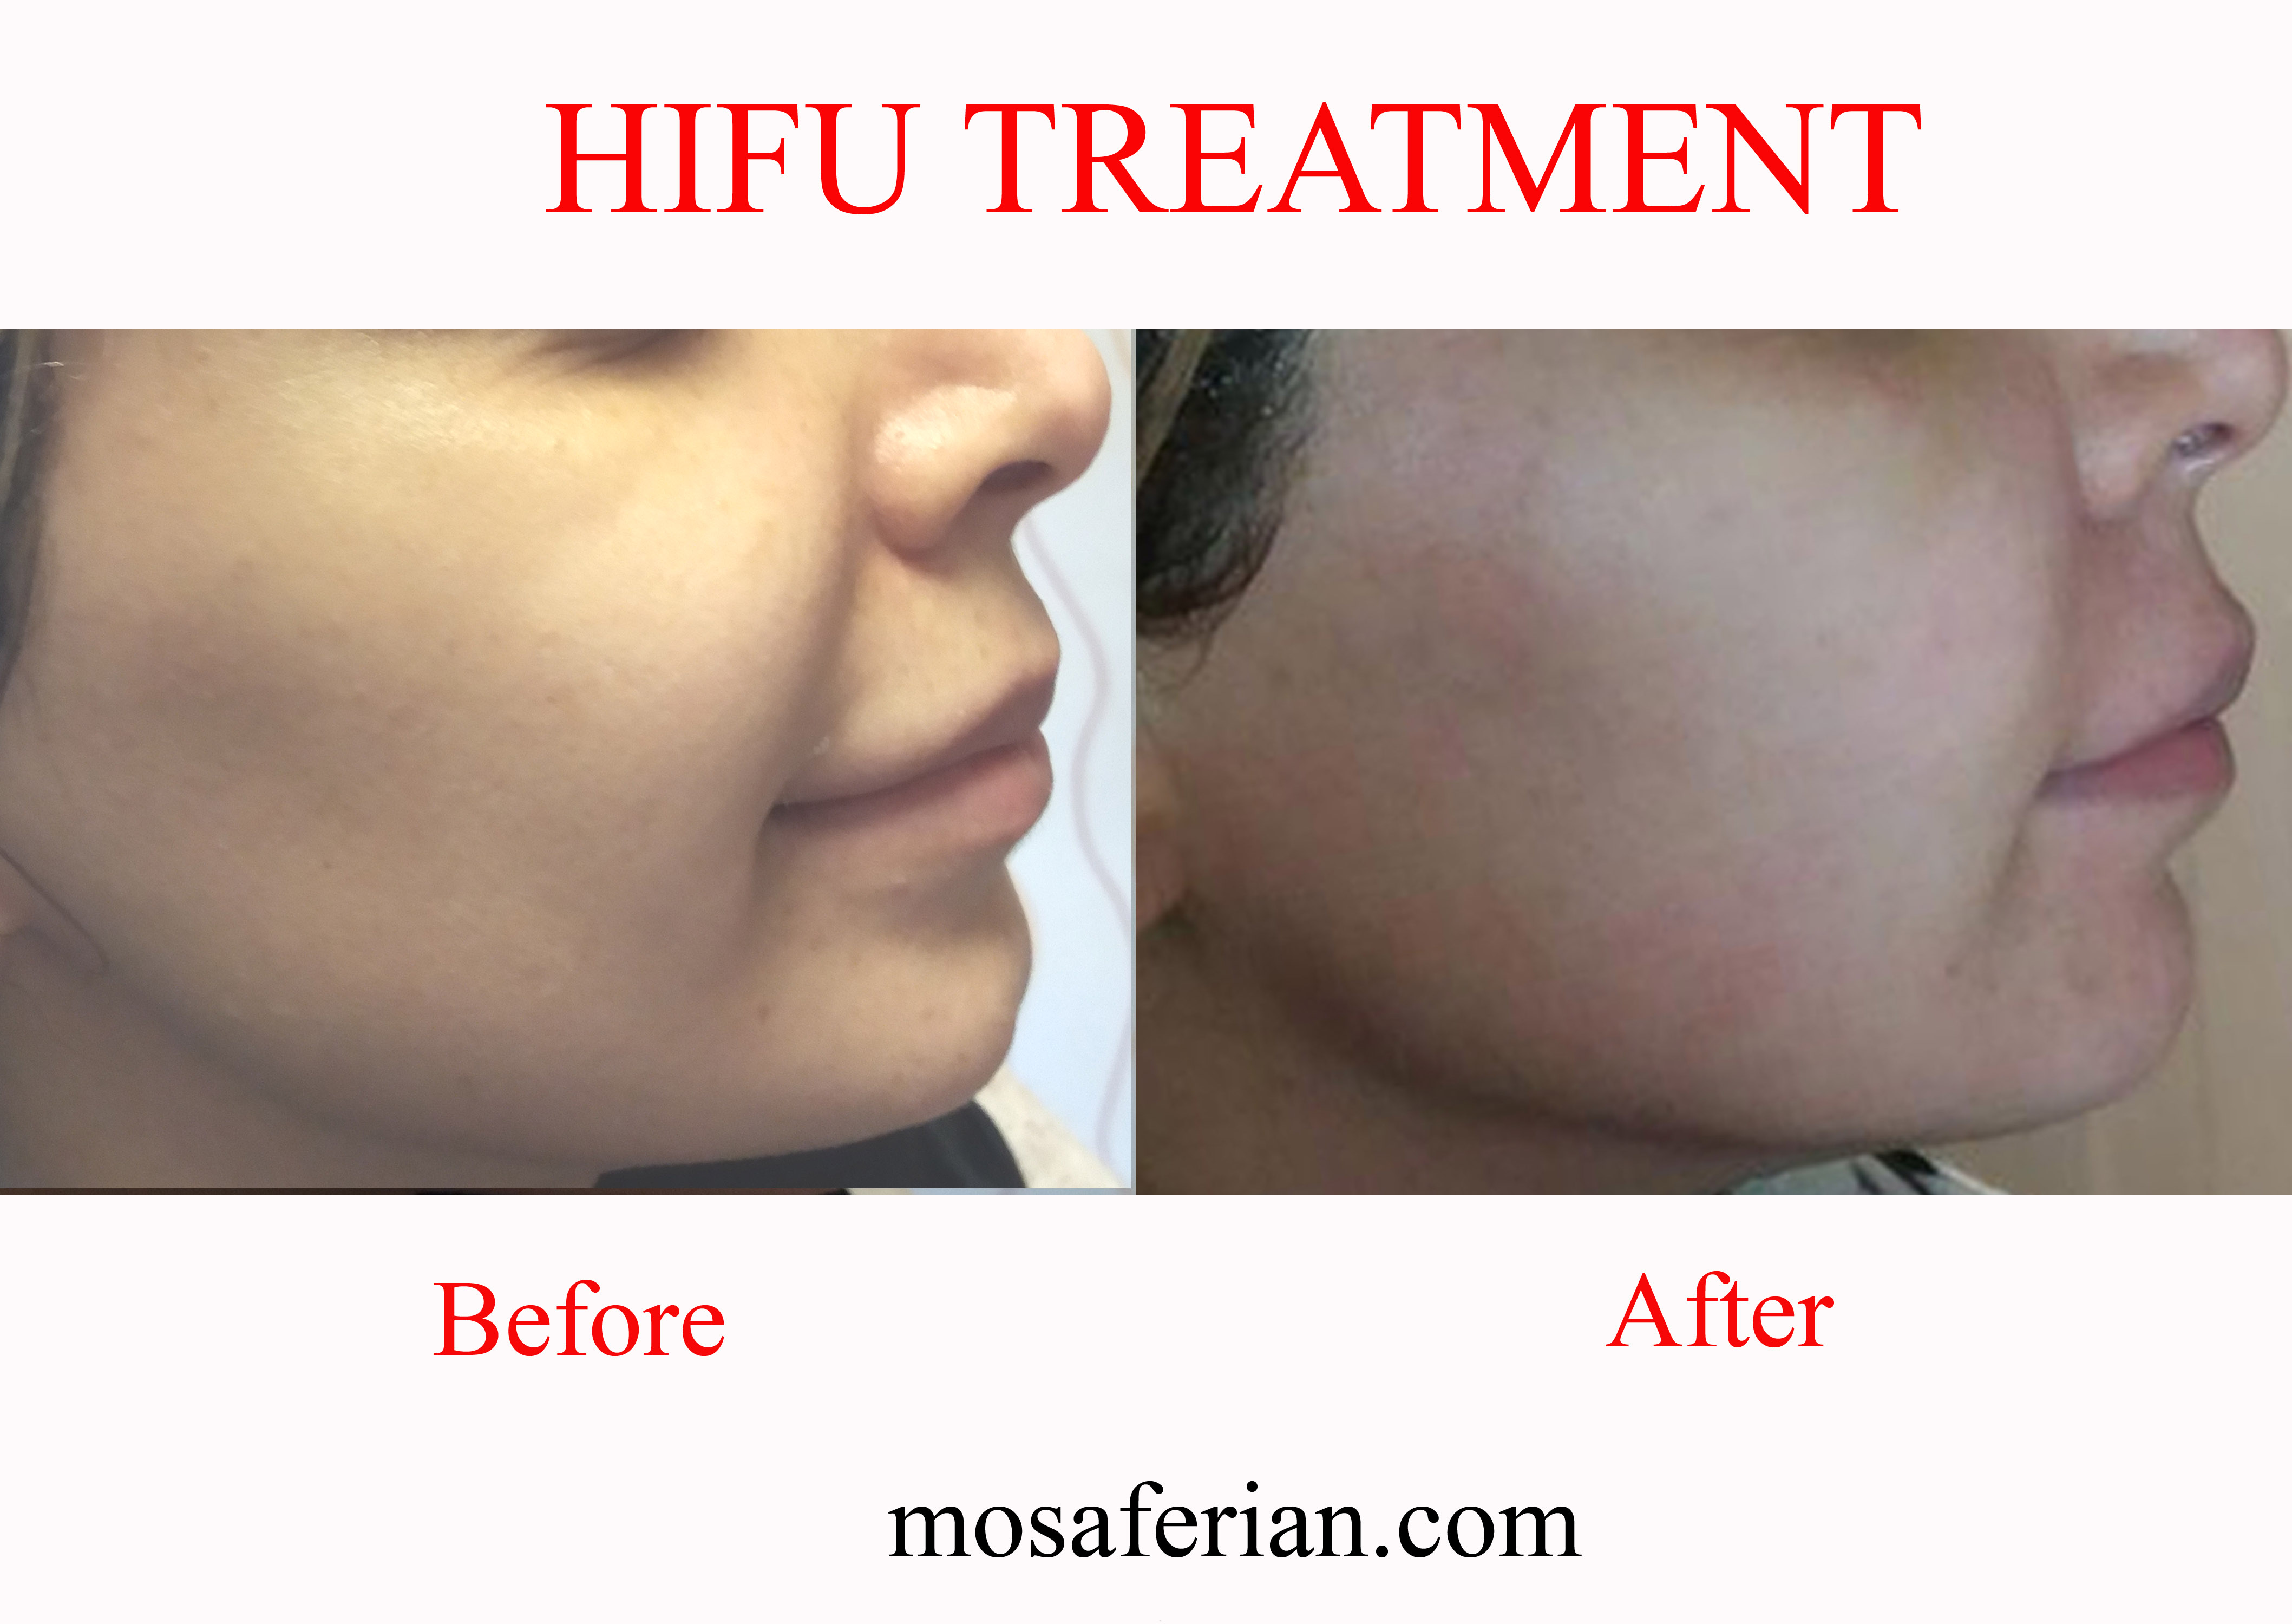 hifu treatment lifts and tightens skin for a non surgical